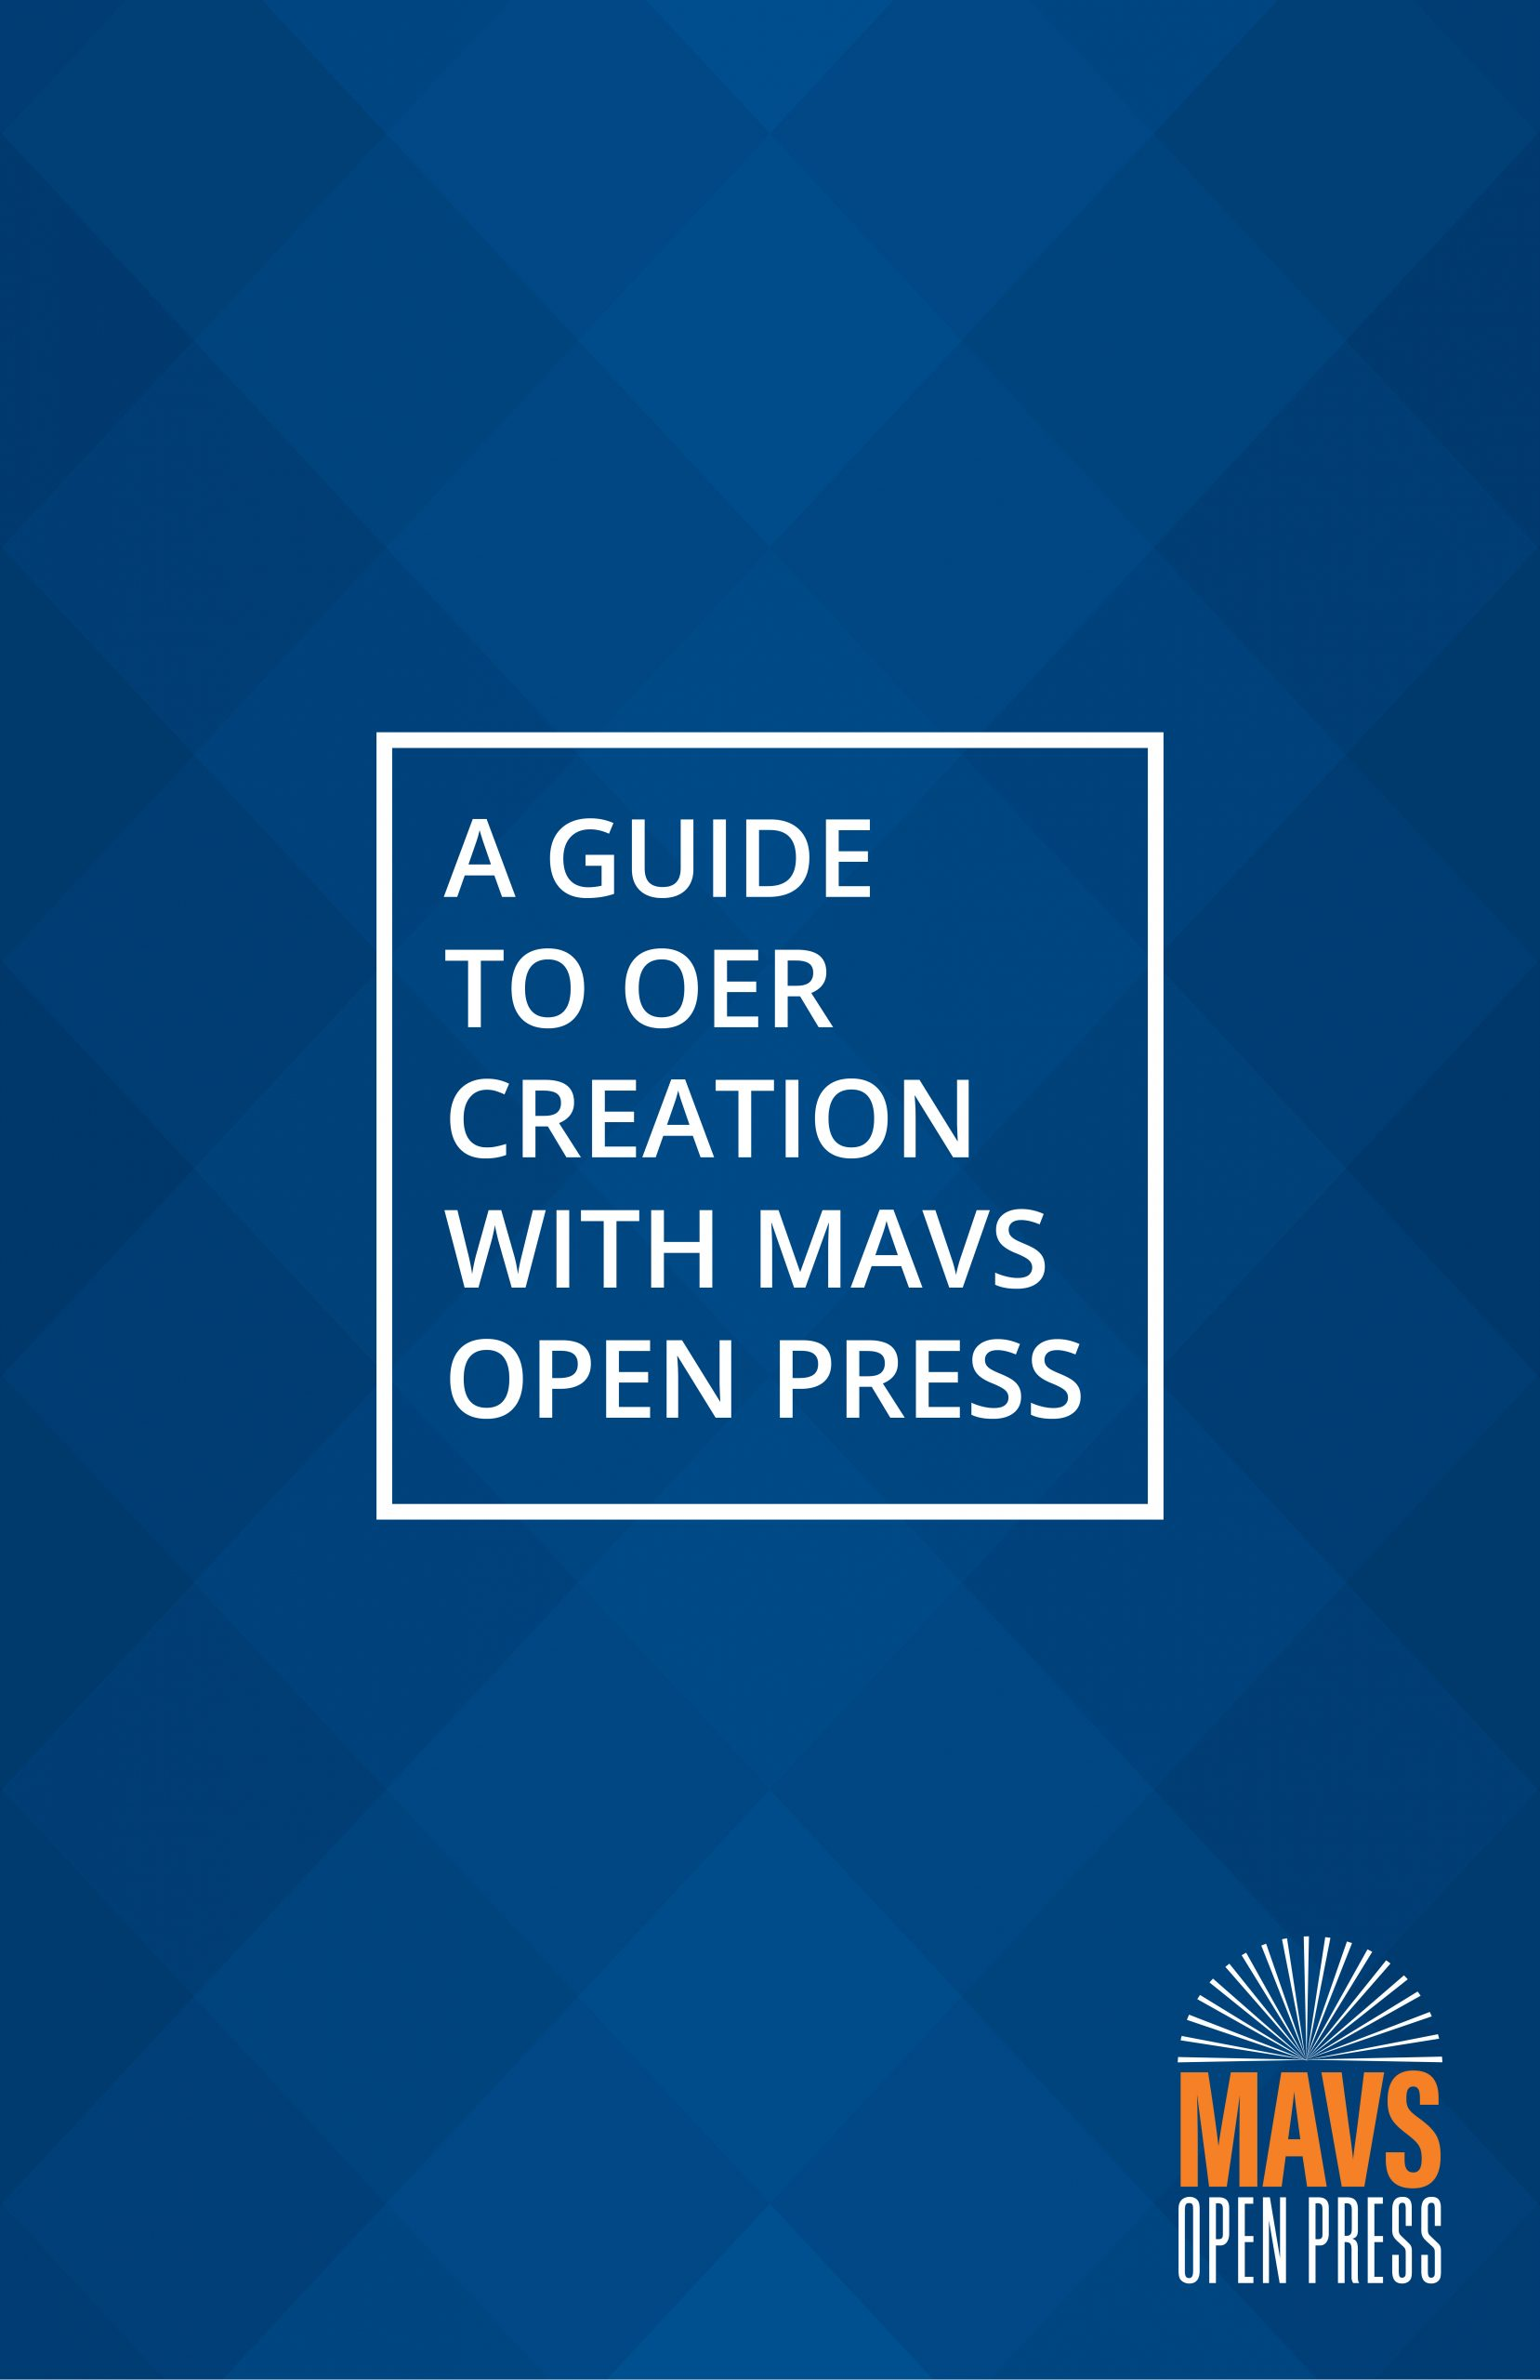 Cover image for A Guide to OER Creation with Mavs Open Press